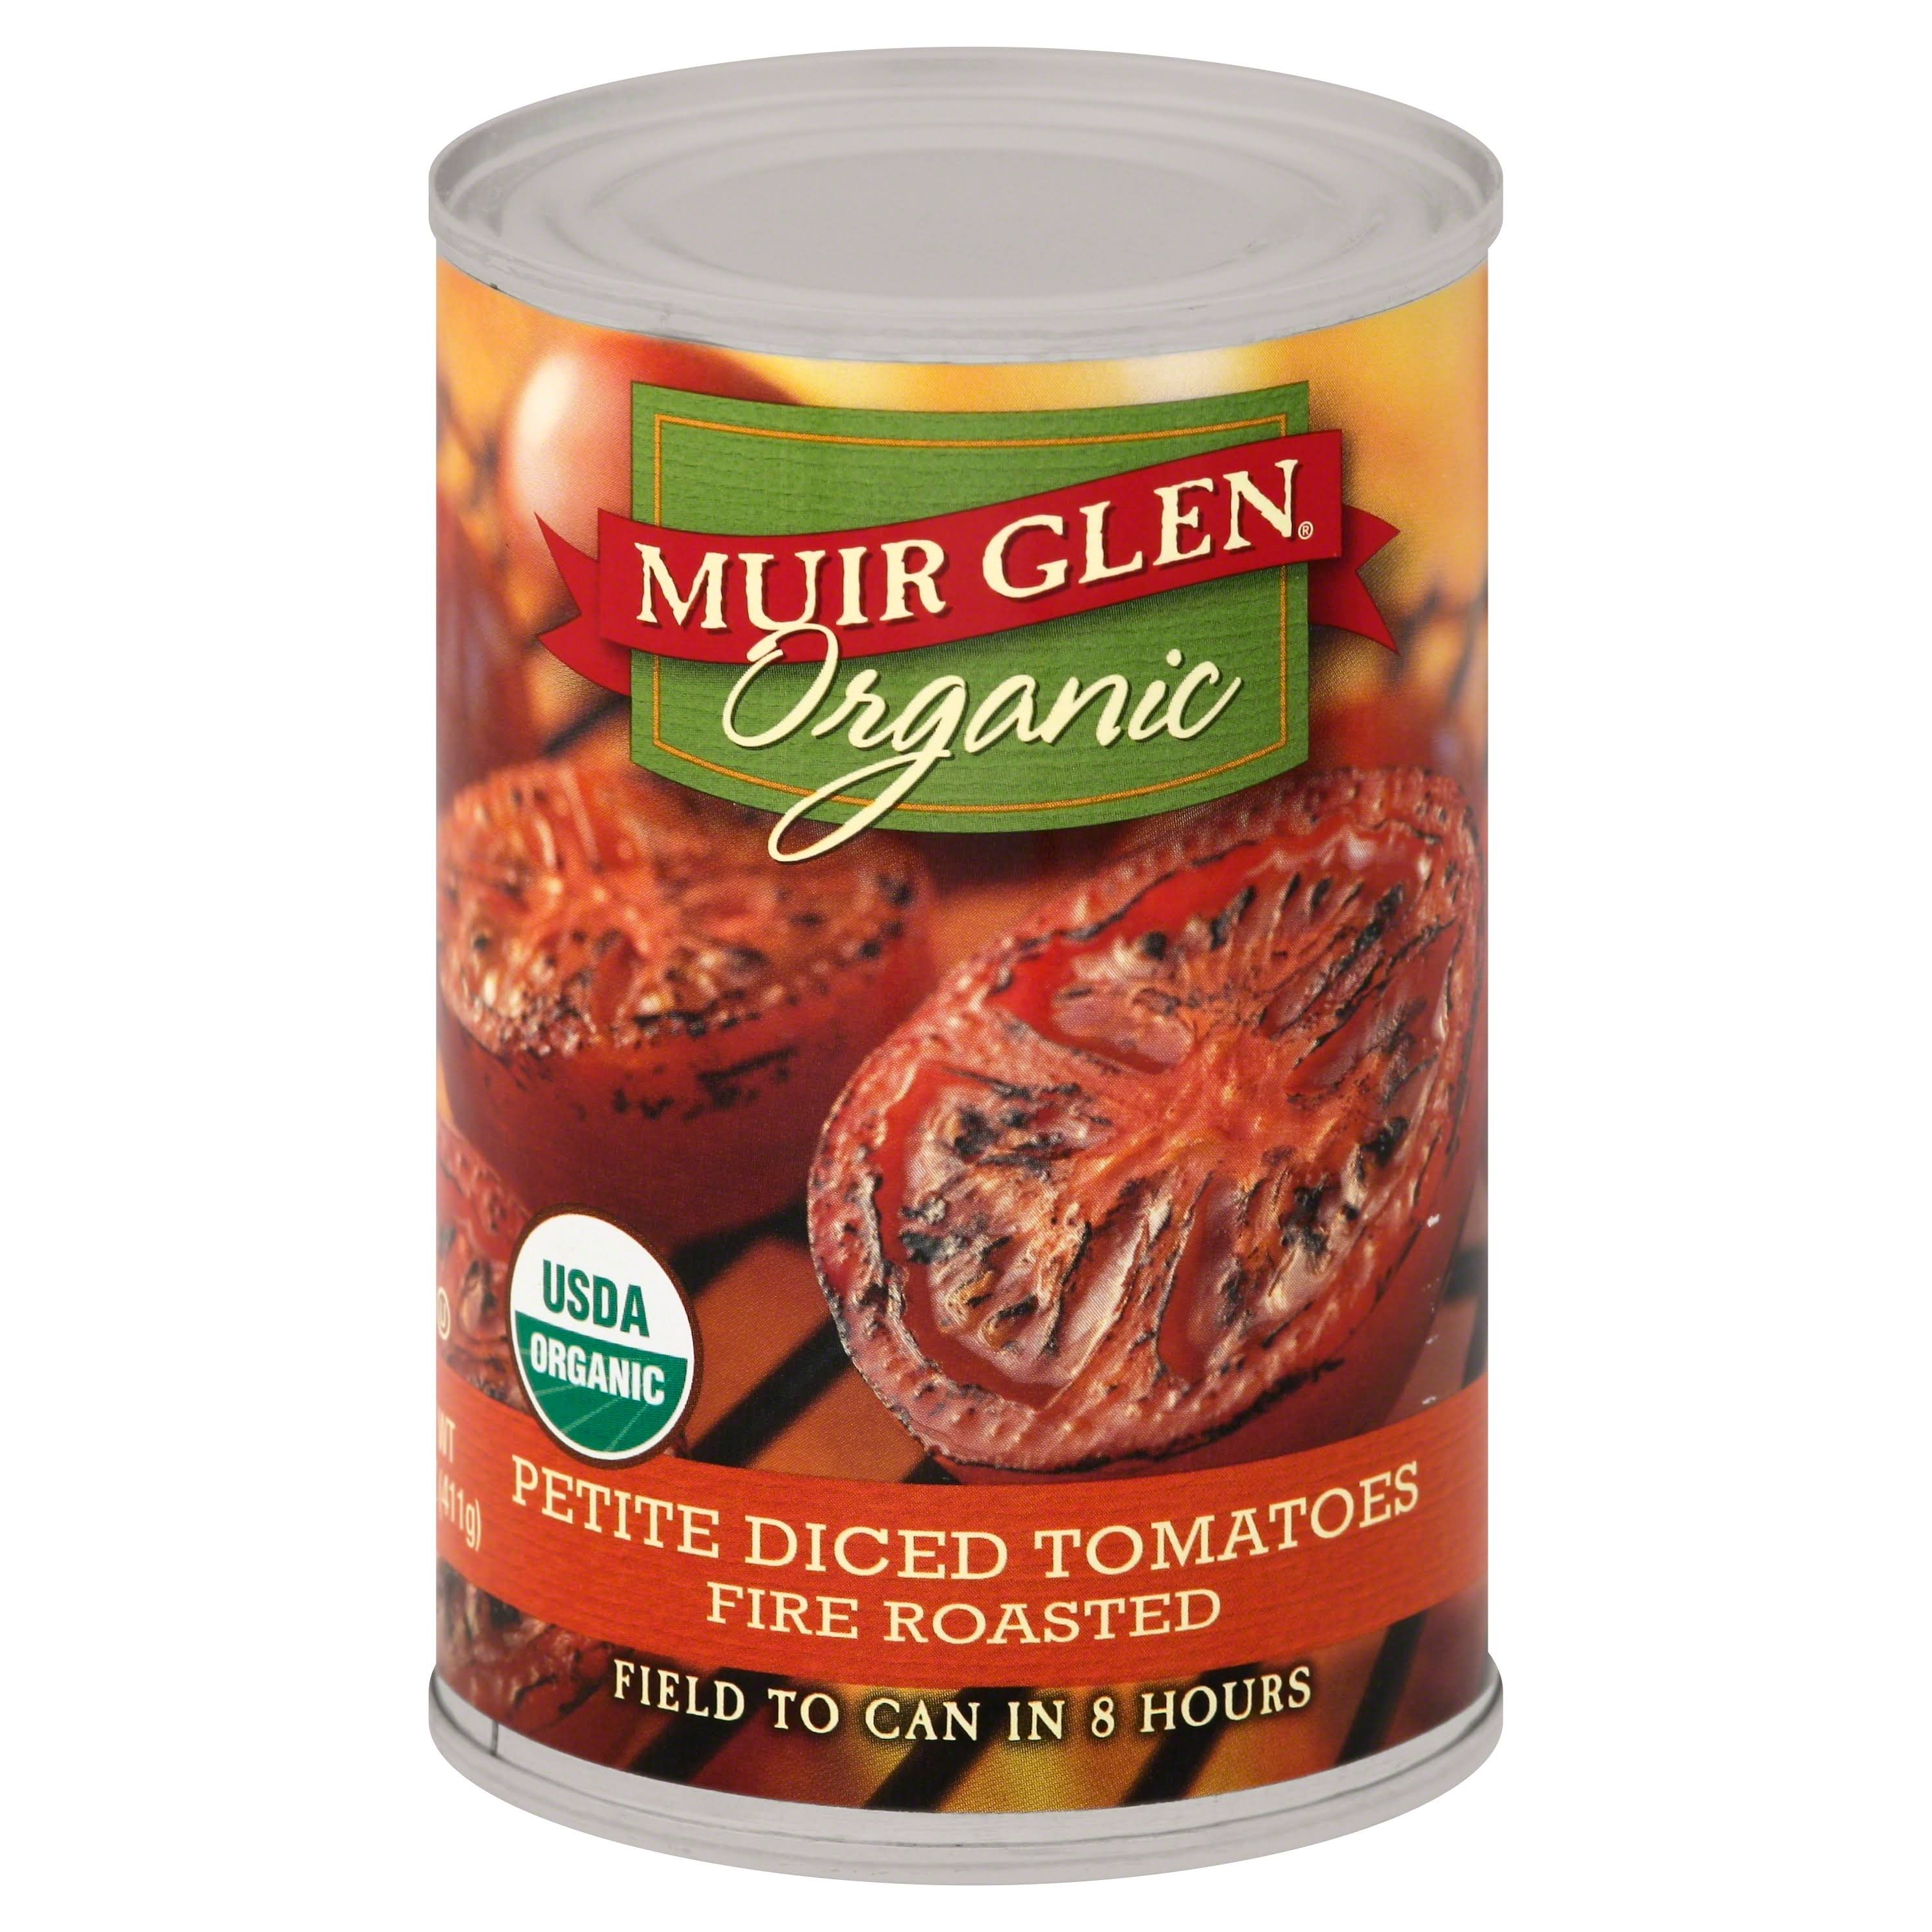 Muir Glen Organic Petite Diced Tomatoes - Fire Roasted,12 x 14.5oz